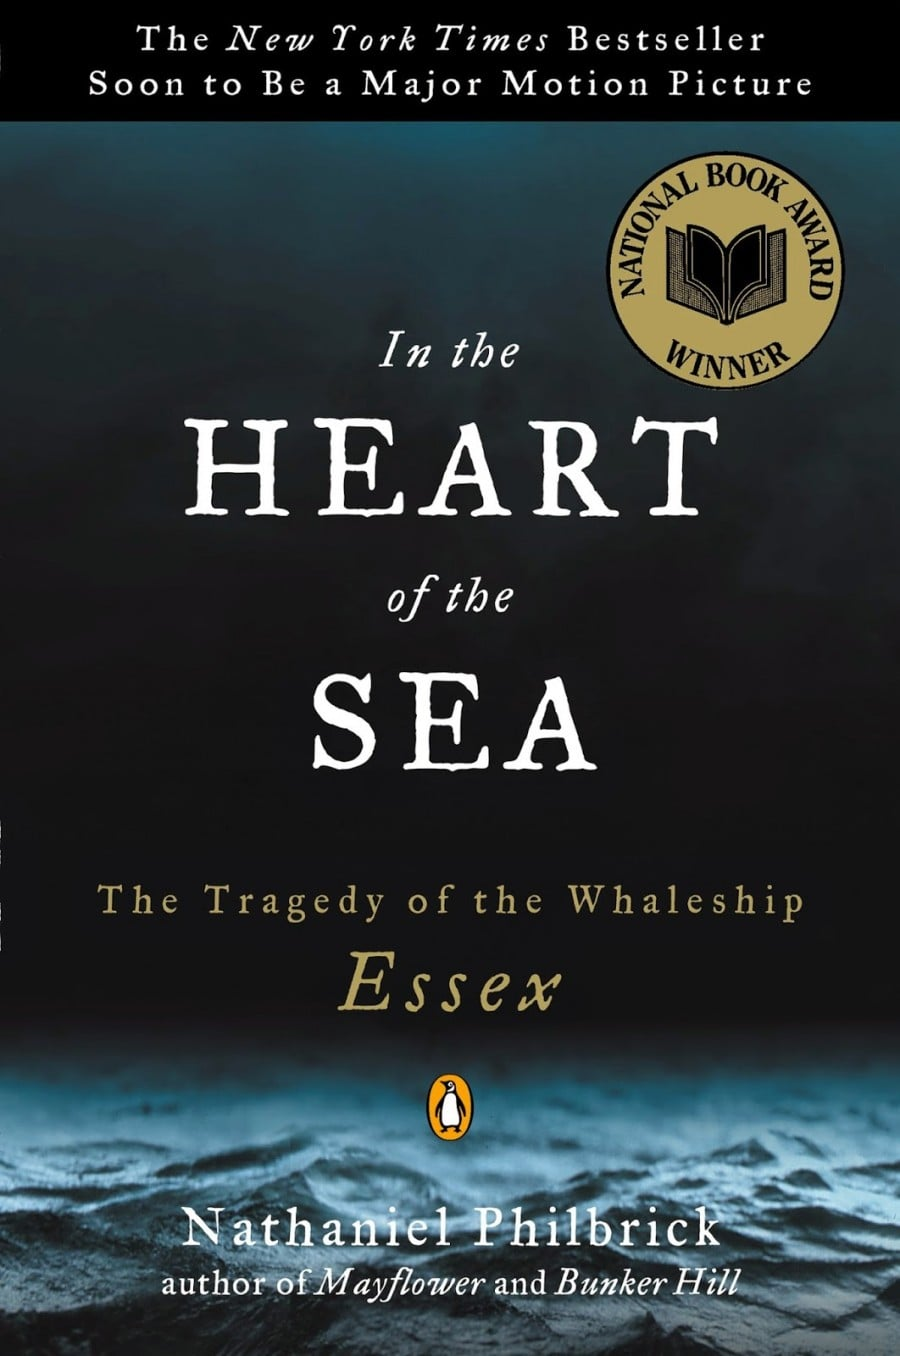 In-the-heart-of-the-sea-book-cover-e1450817843493.jpg